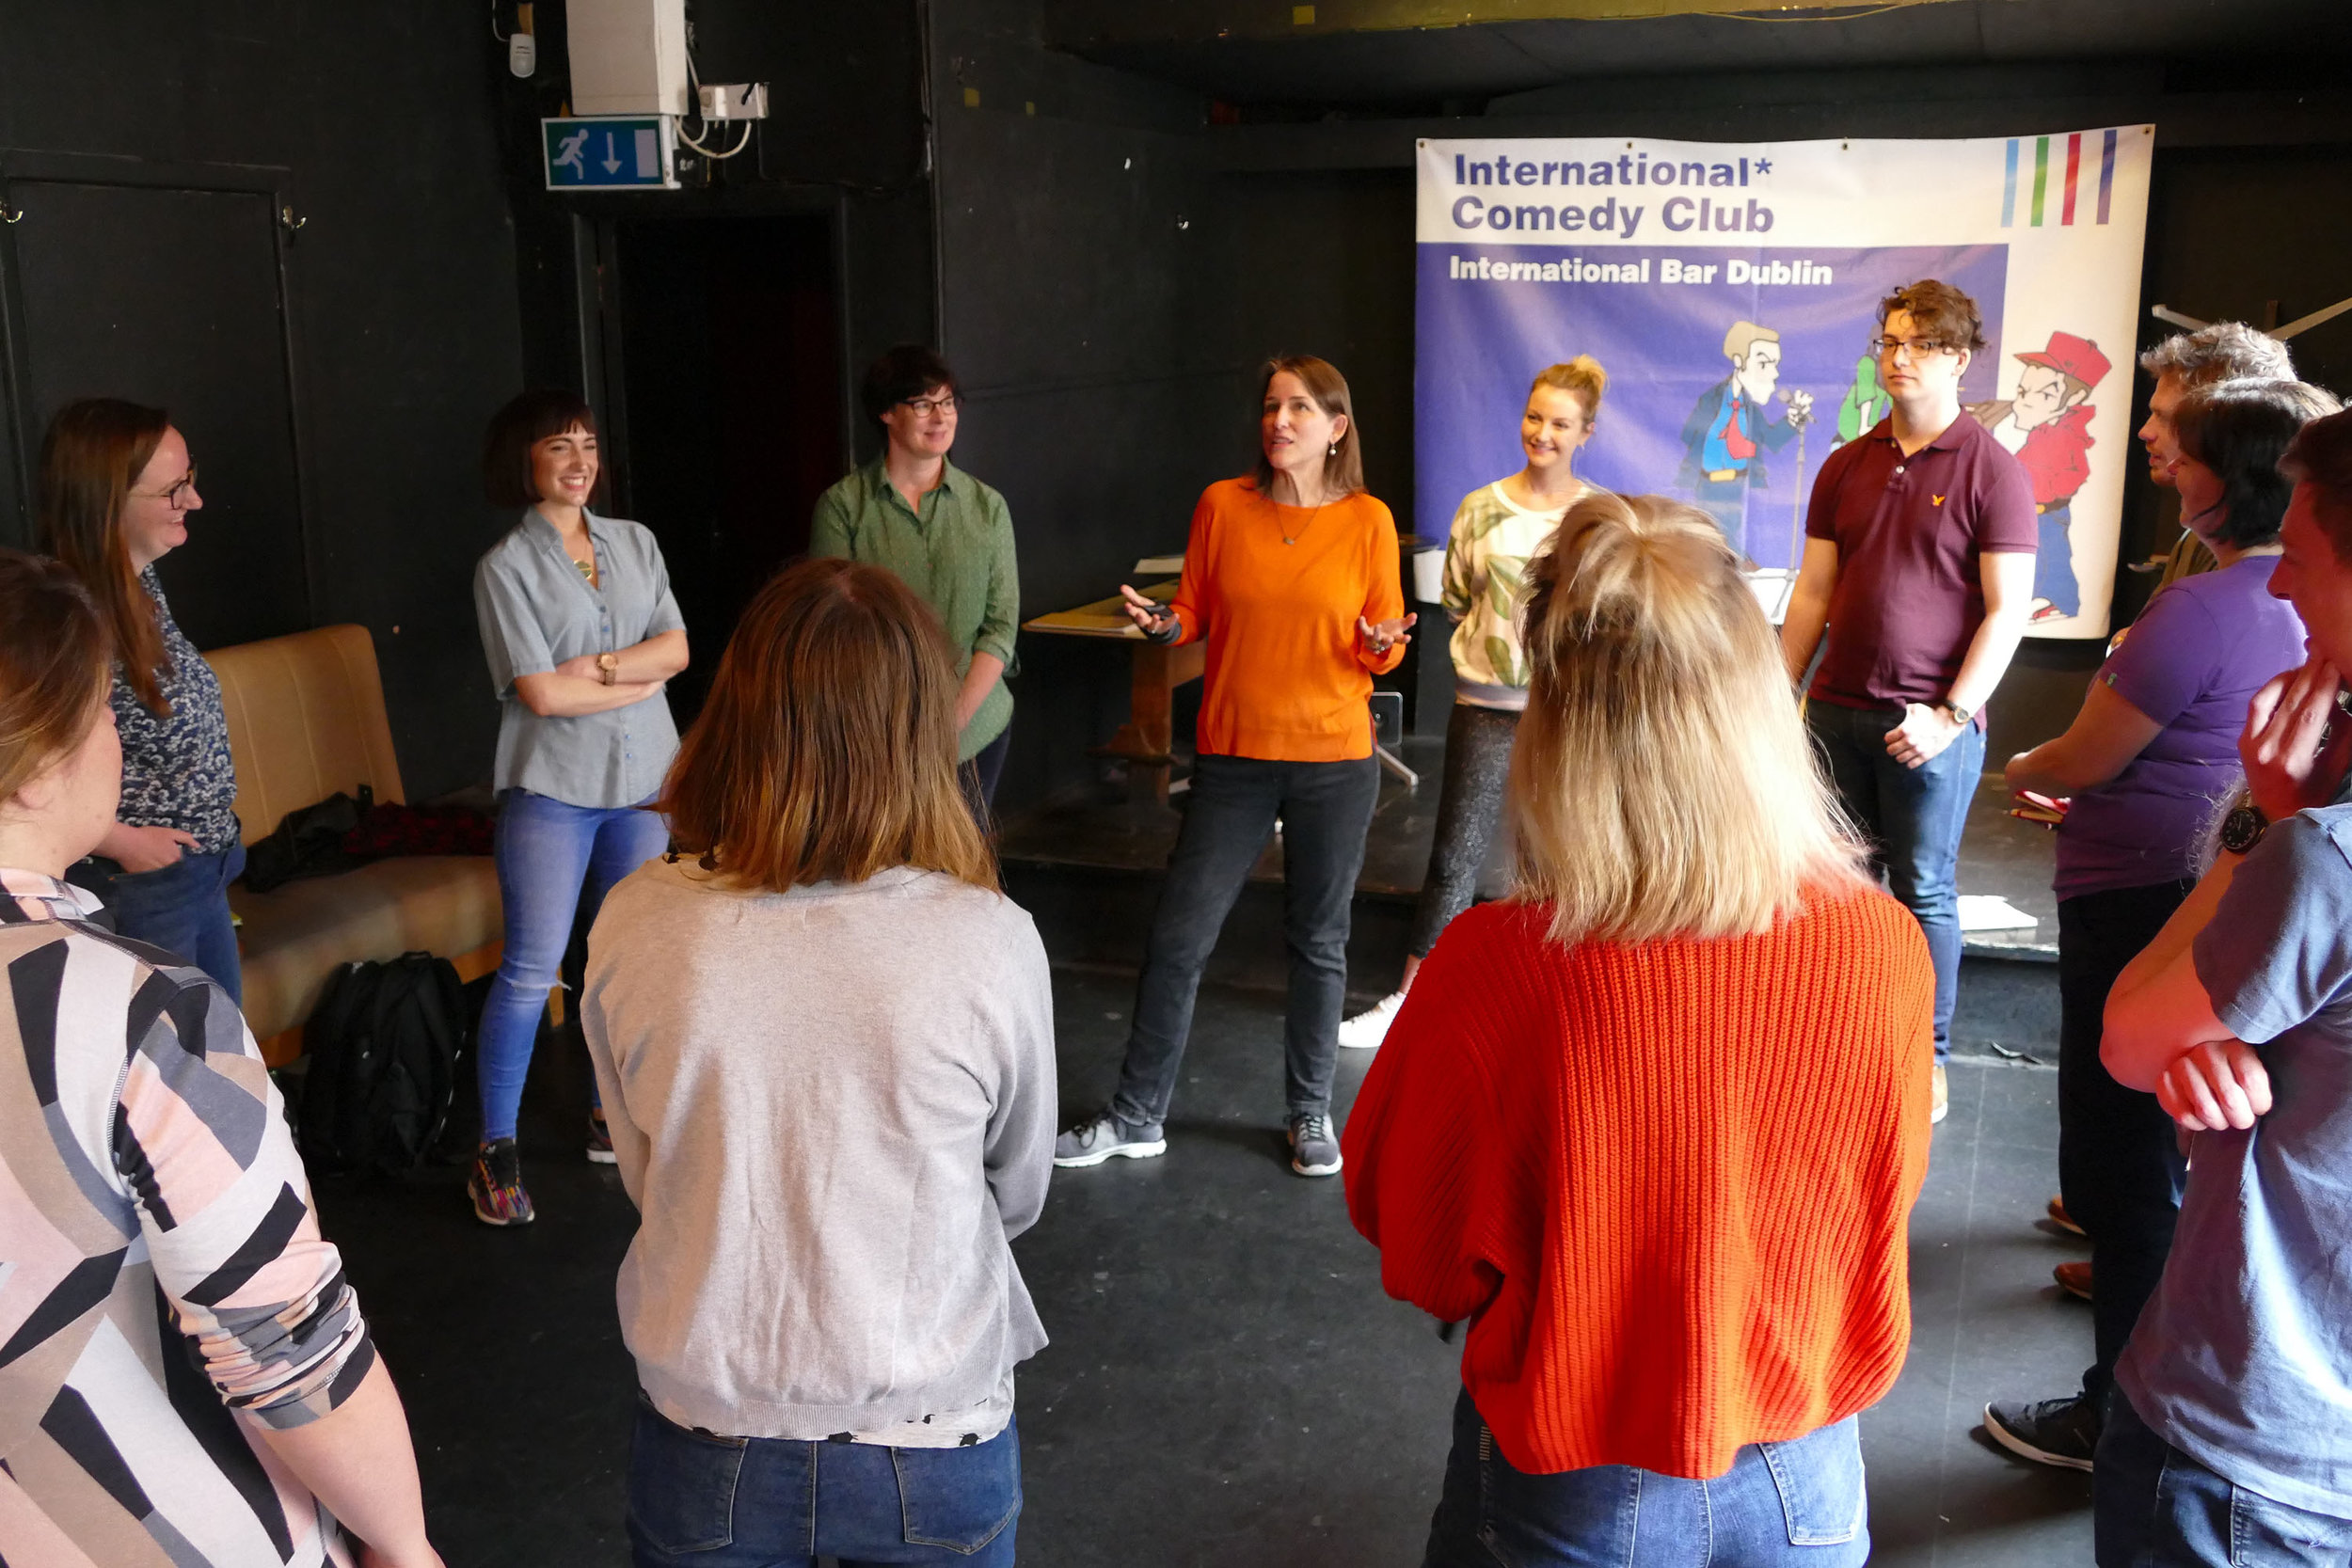 Each workshop begins with introductory exercises and discussion in order to develop warmth among the group and an understanding of the workshop fundamentals.